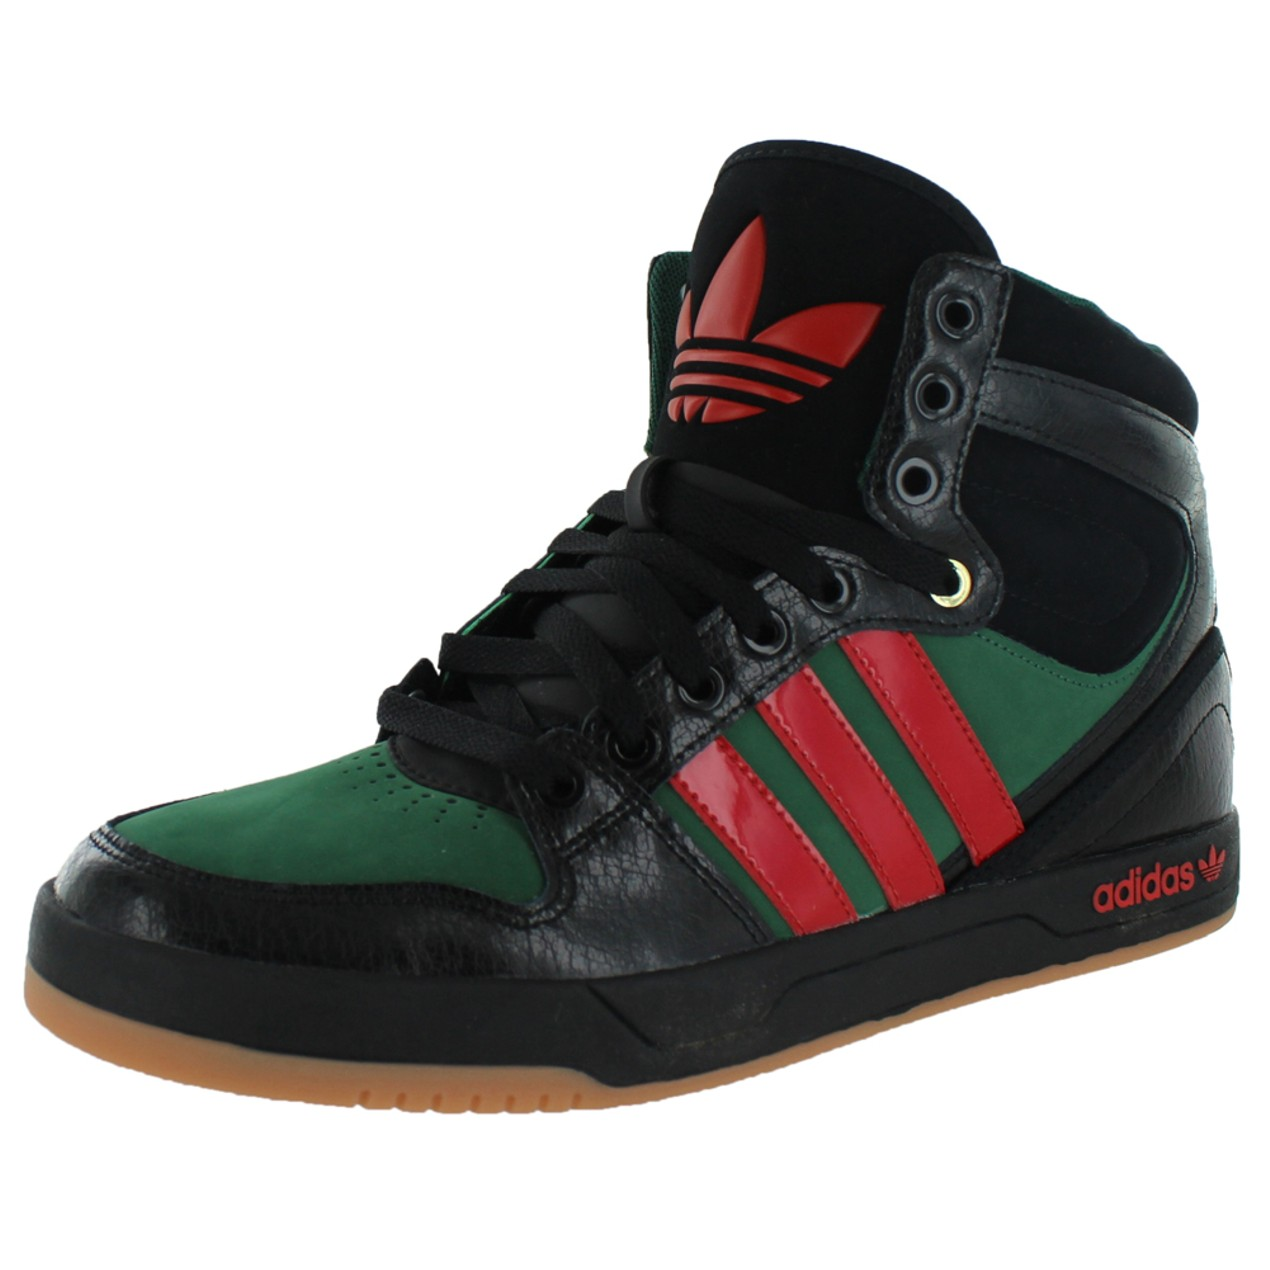 best service 2f16d 79903 ... Adidas Adi Originals Mens Court Attitude Sneakers ...